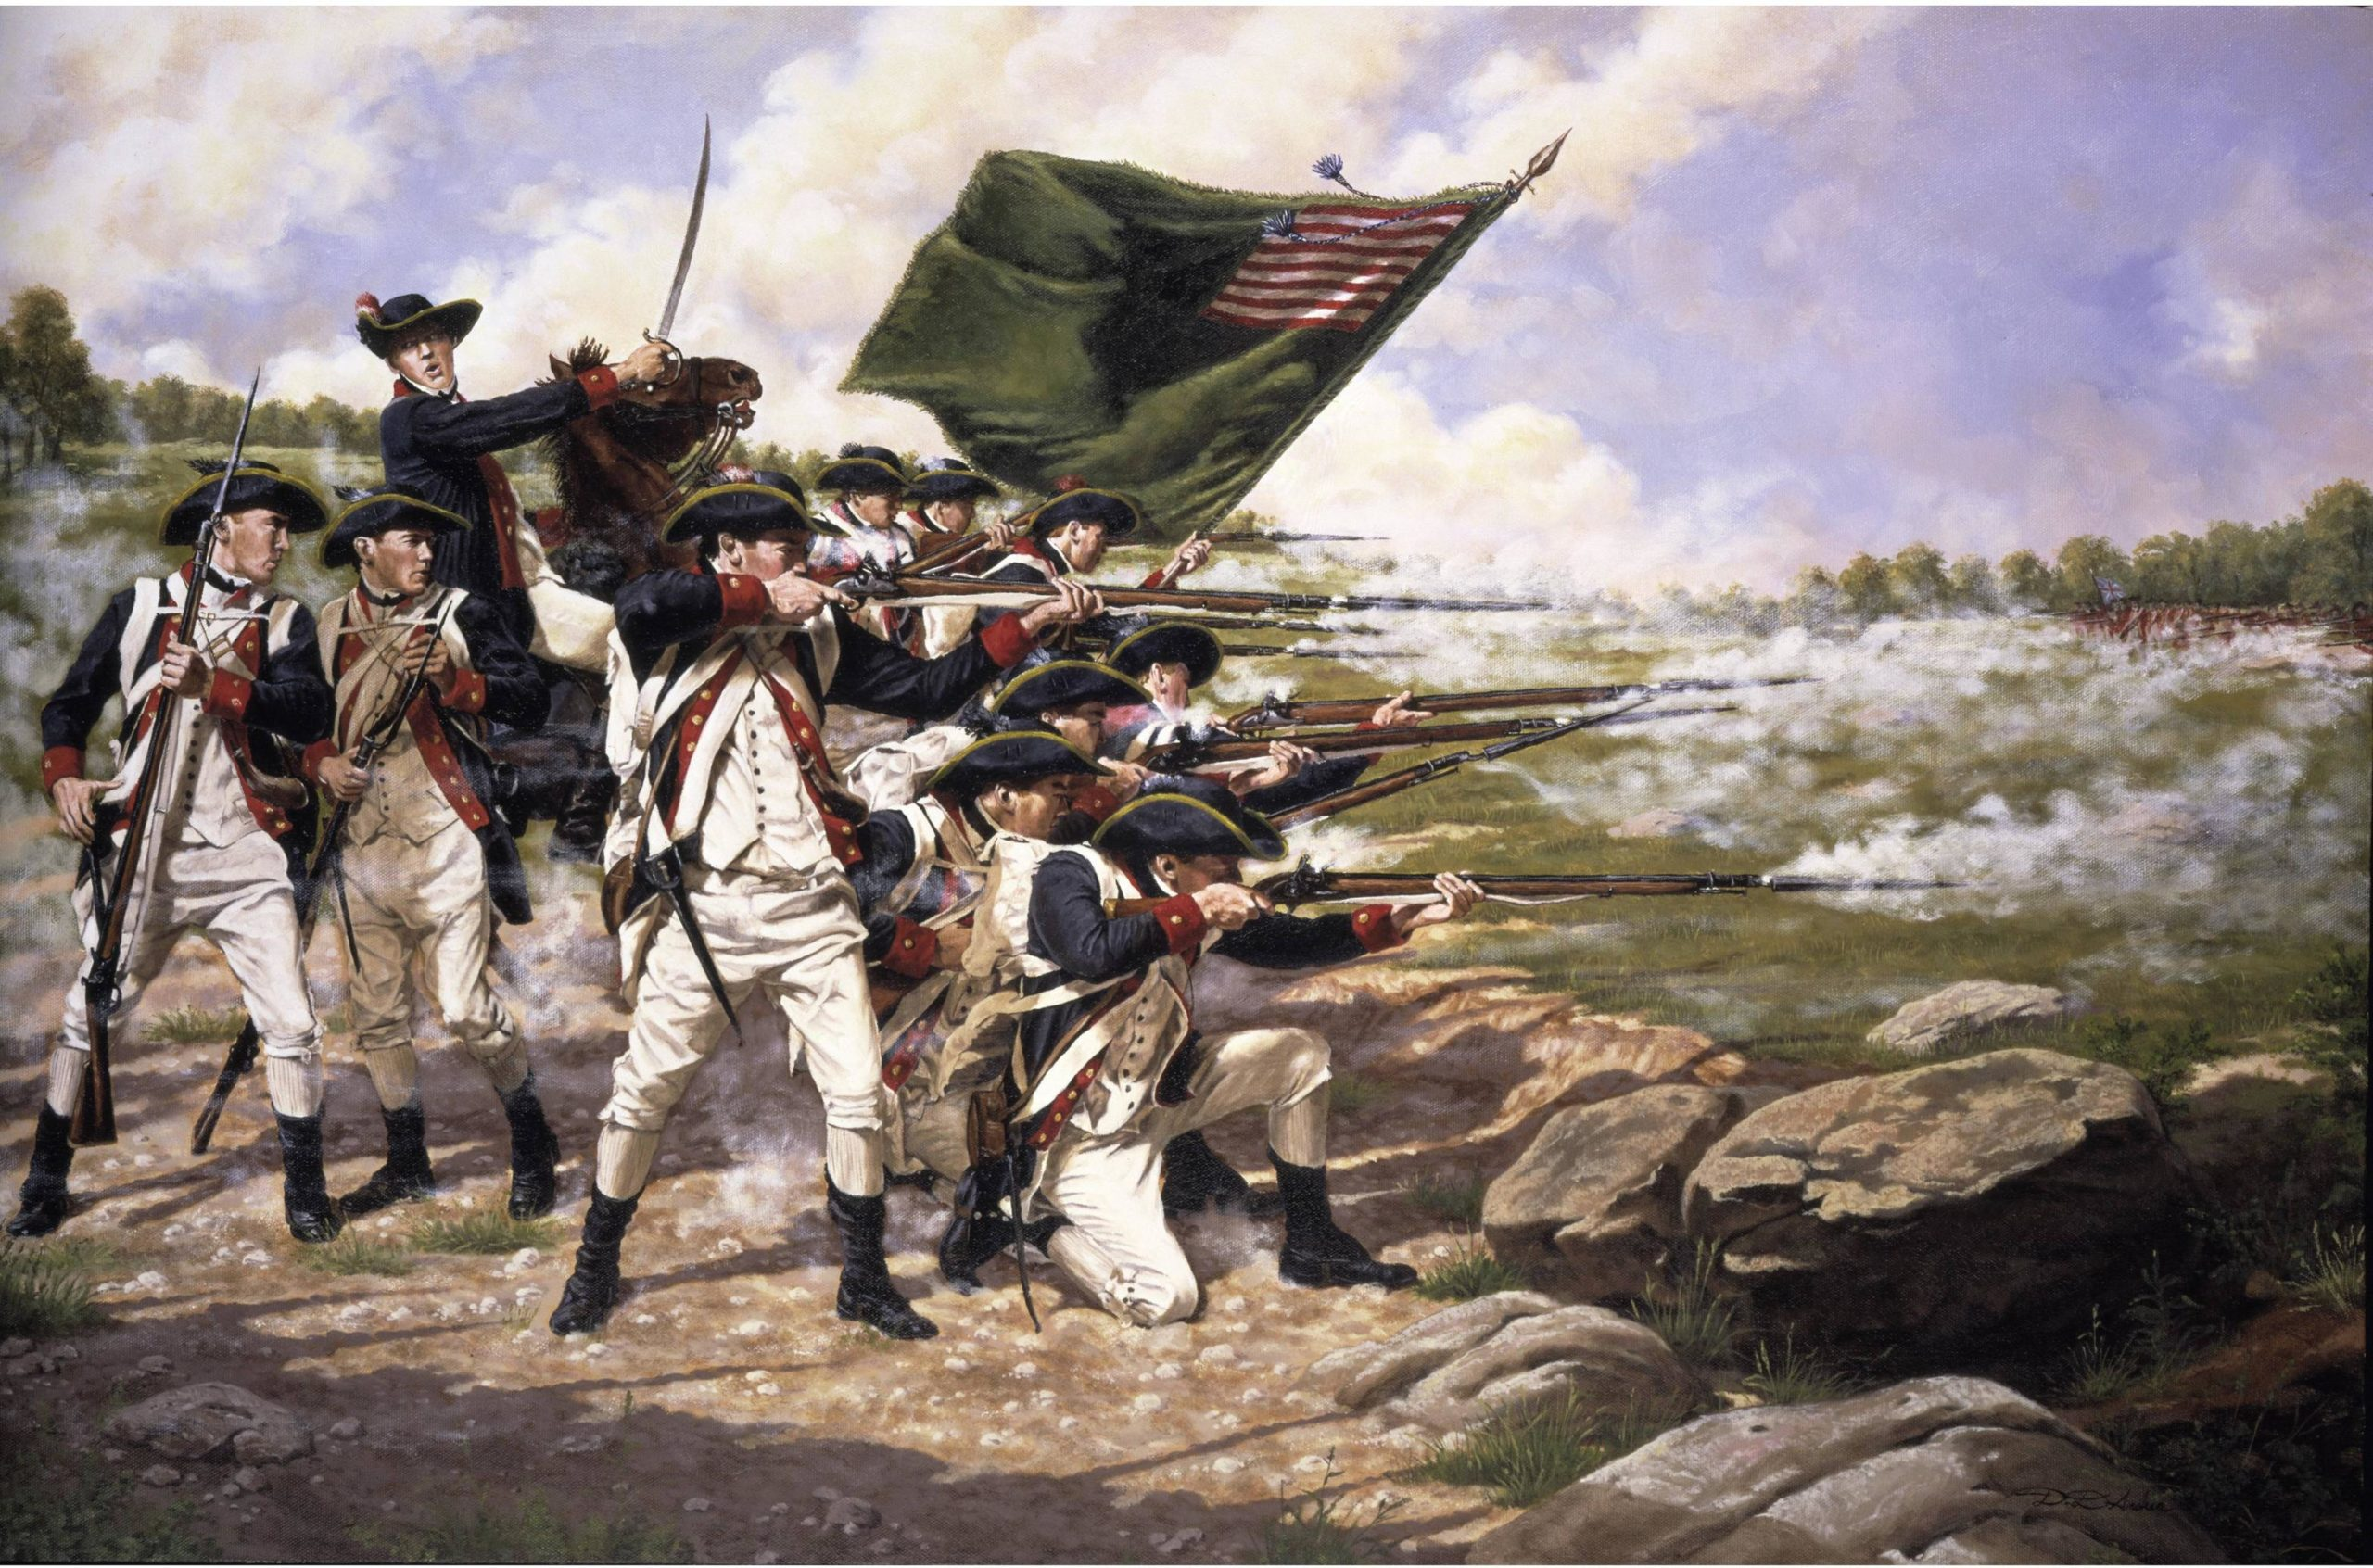 america revolution a war for independence This cause is much more just than waging a war to deny independence american military and political leaders were inexperienced, but proved surprisingly competent the war was expensive and the british population debated its necessity.